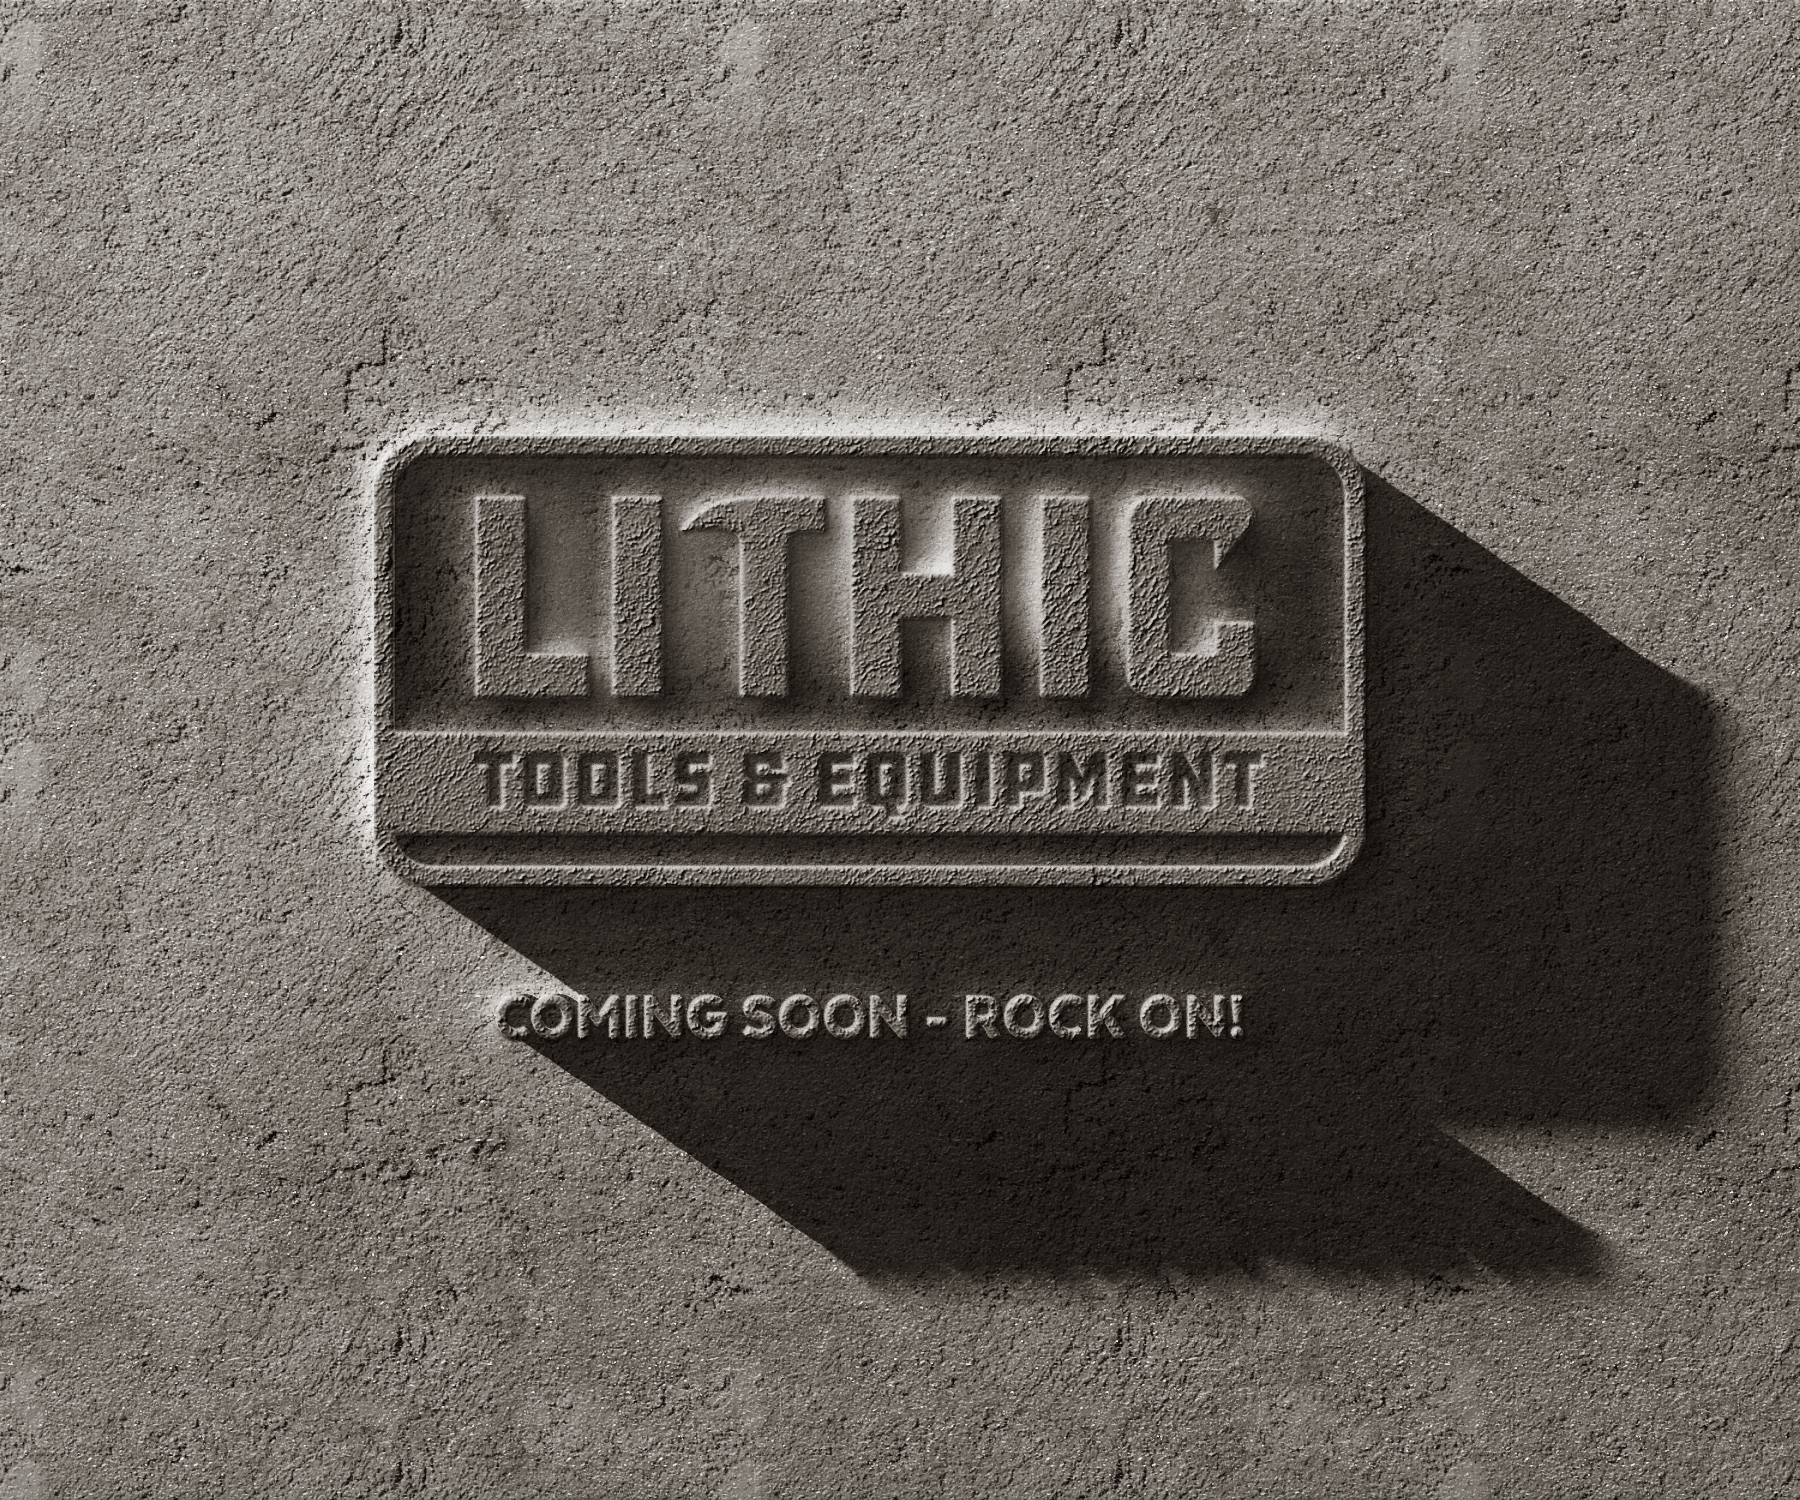 Initial Logo and Brand Identity for new tool product line. Lithic Tools & Equipment